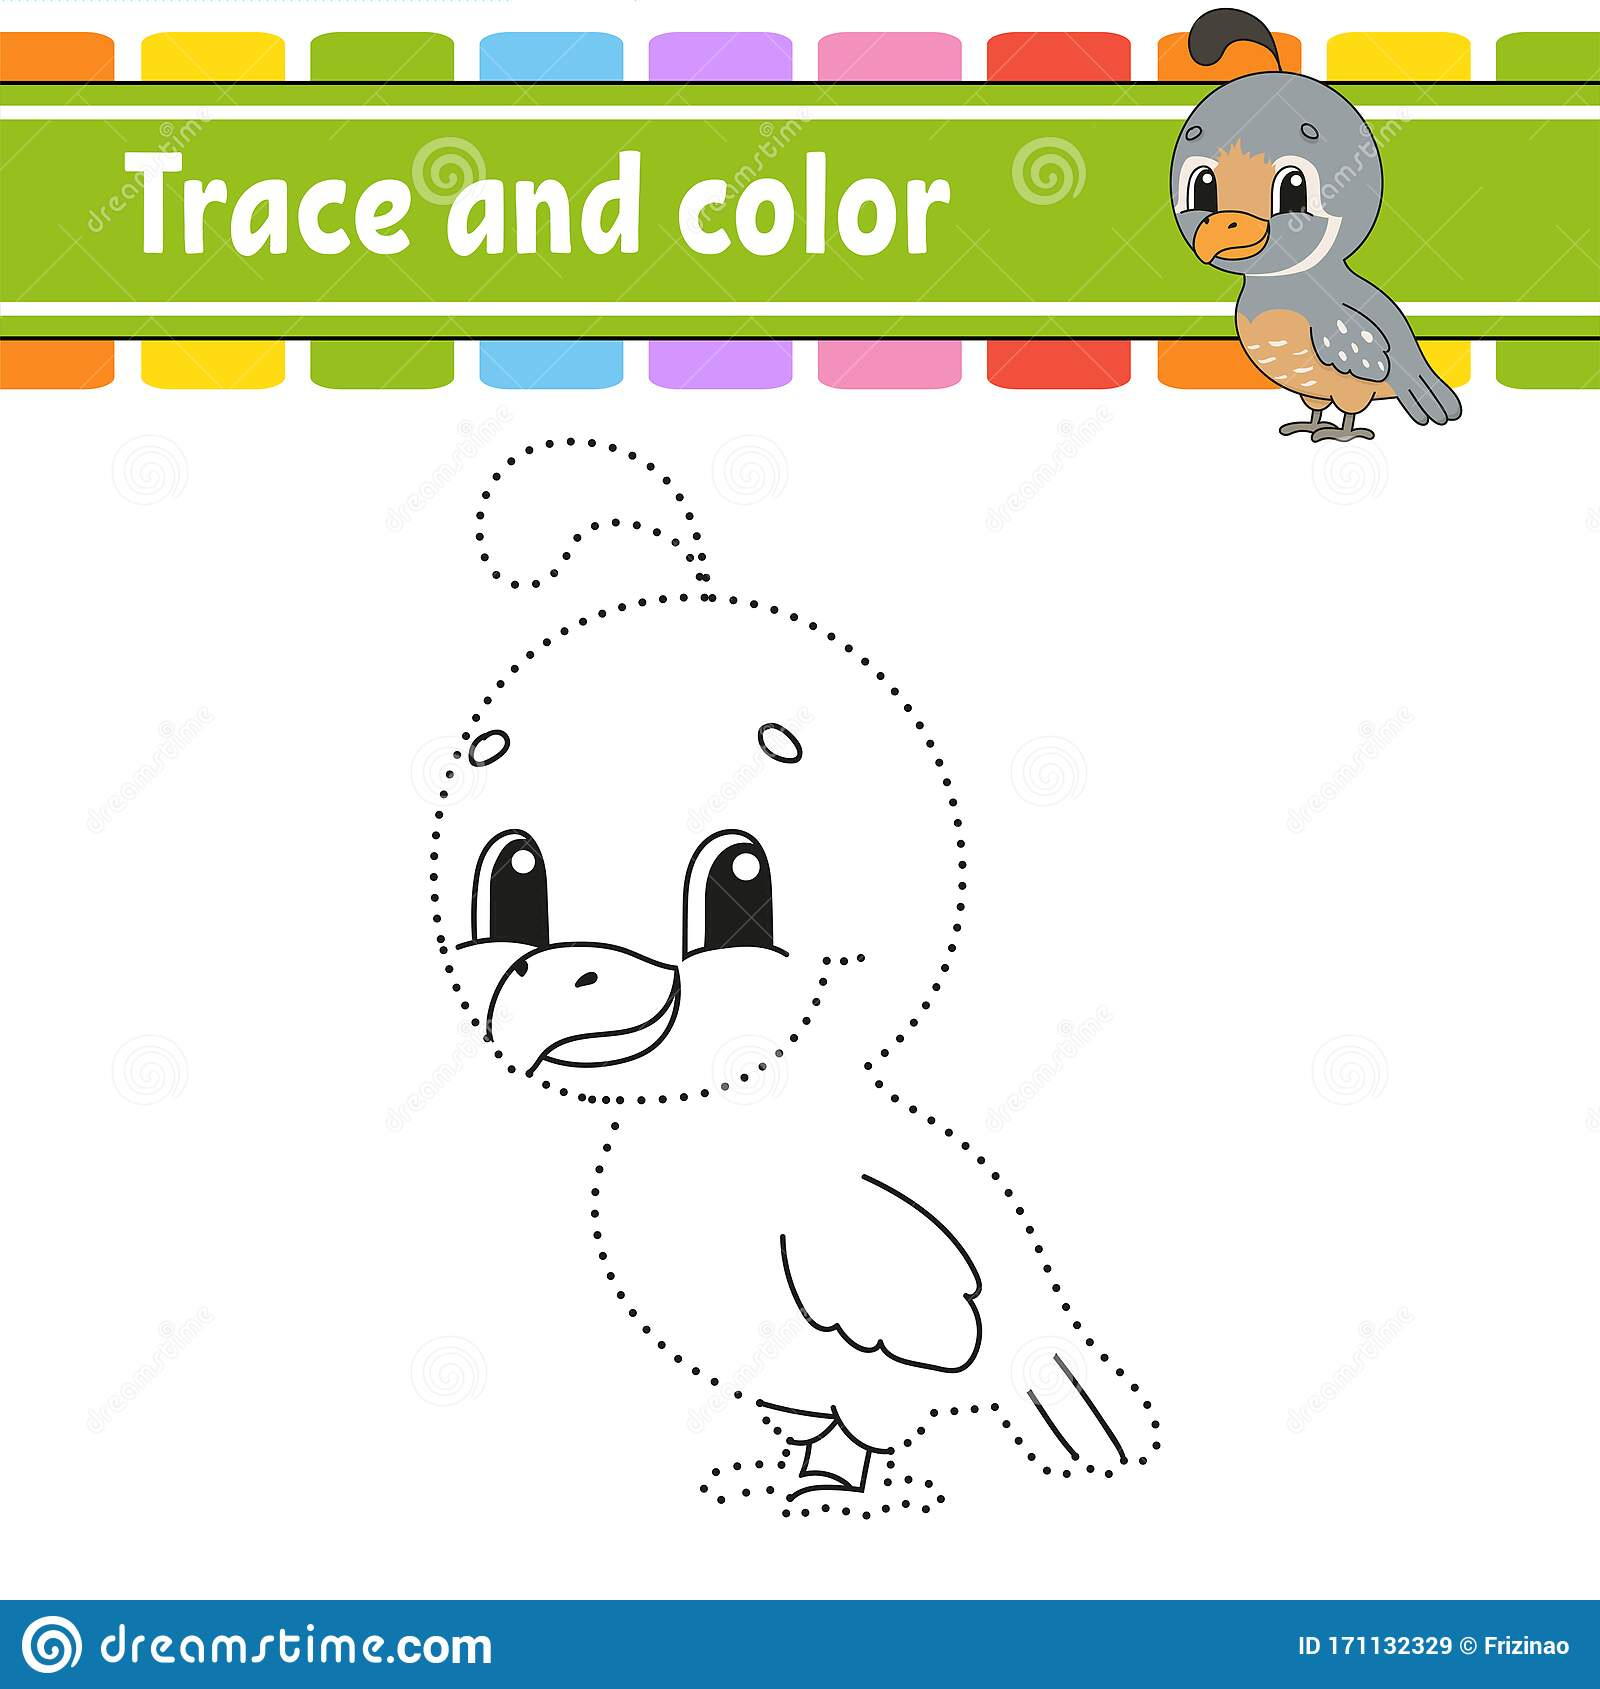 Trace And Color Quail Bird Coloring Page For Kids